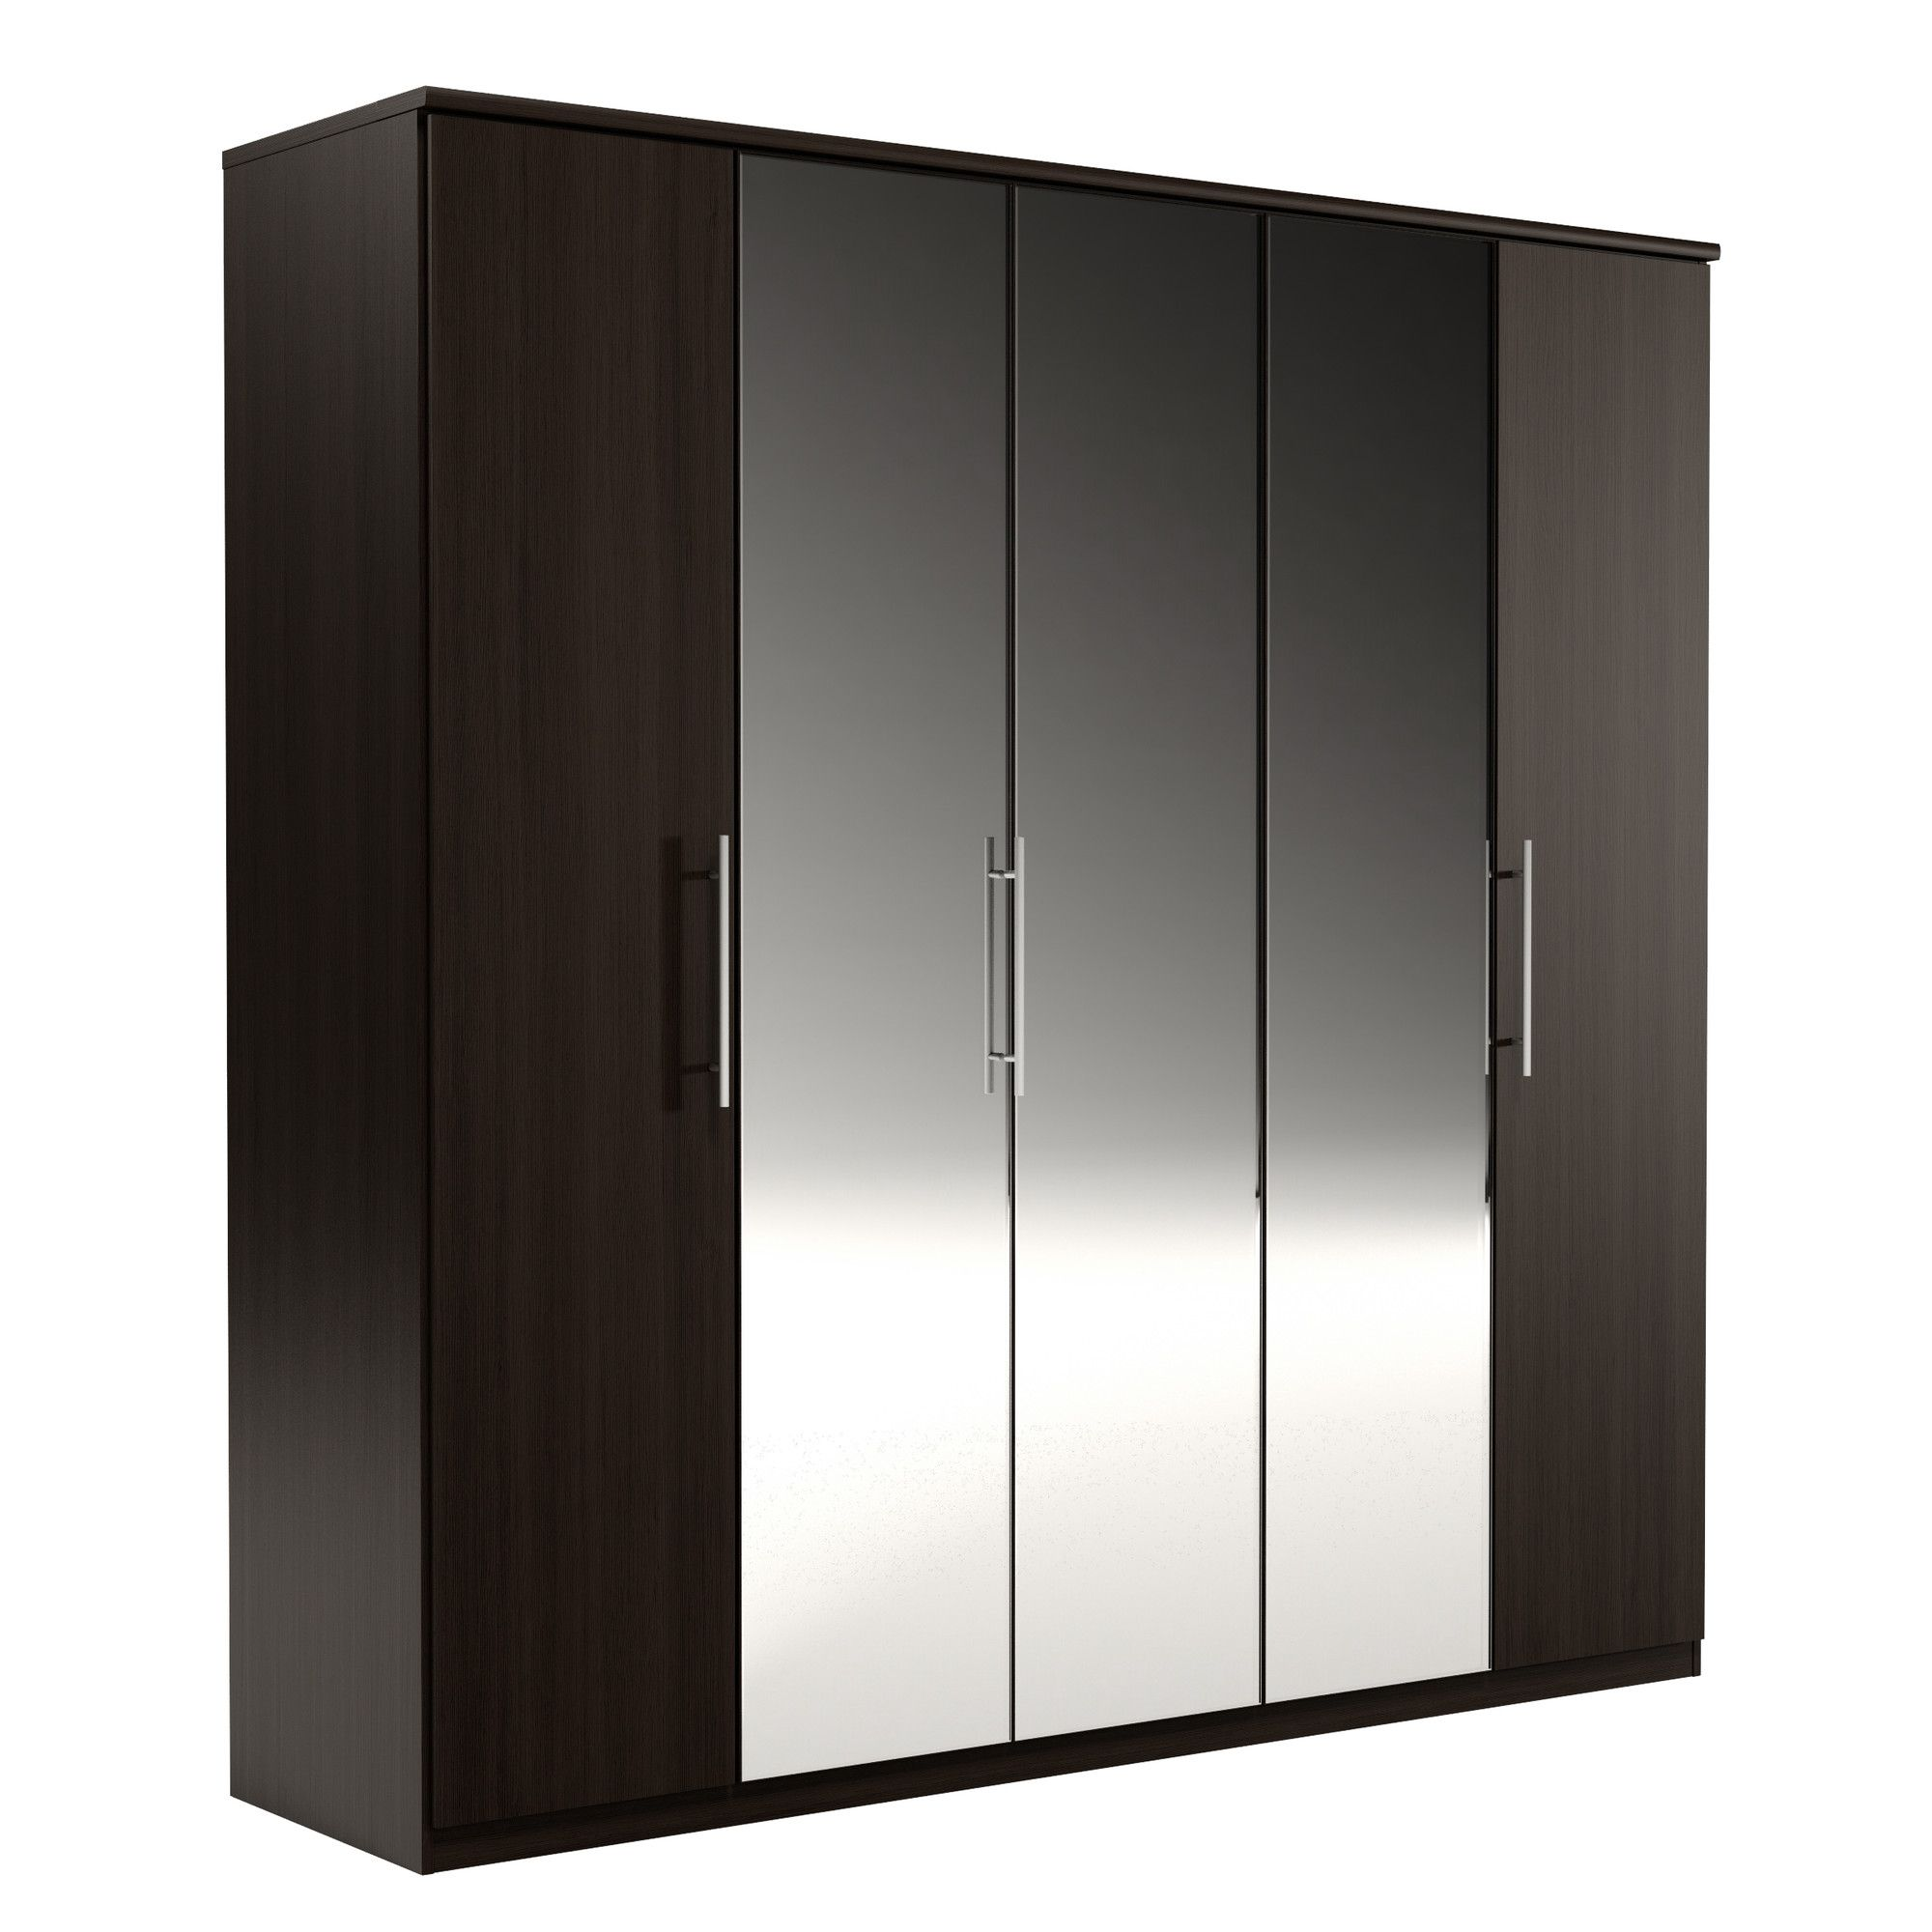 Urbane Designs Prague 5 Door Wardrobe - Espresso at Tesco Direct